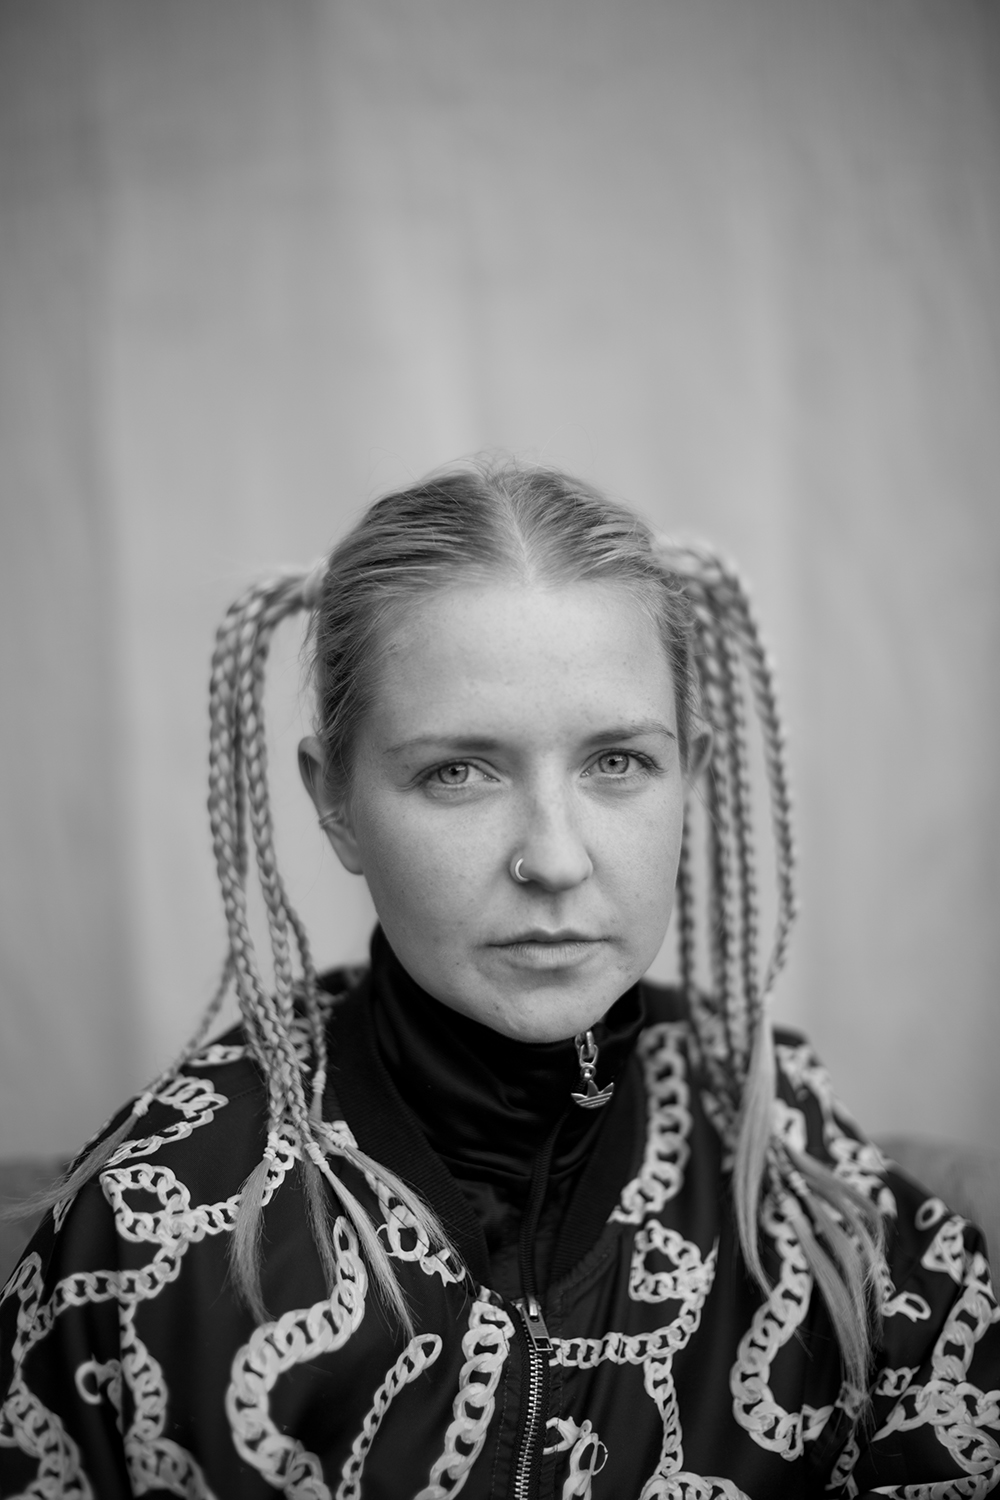 independentair2015_portrait013.jpg